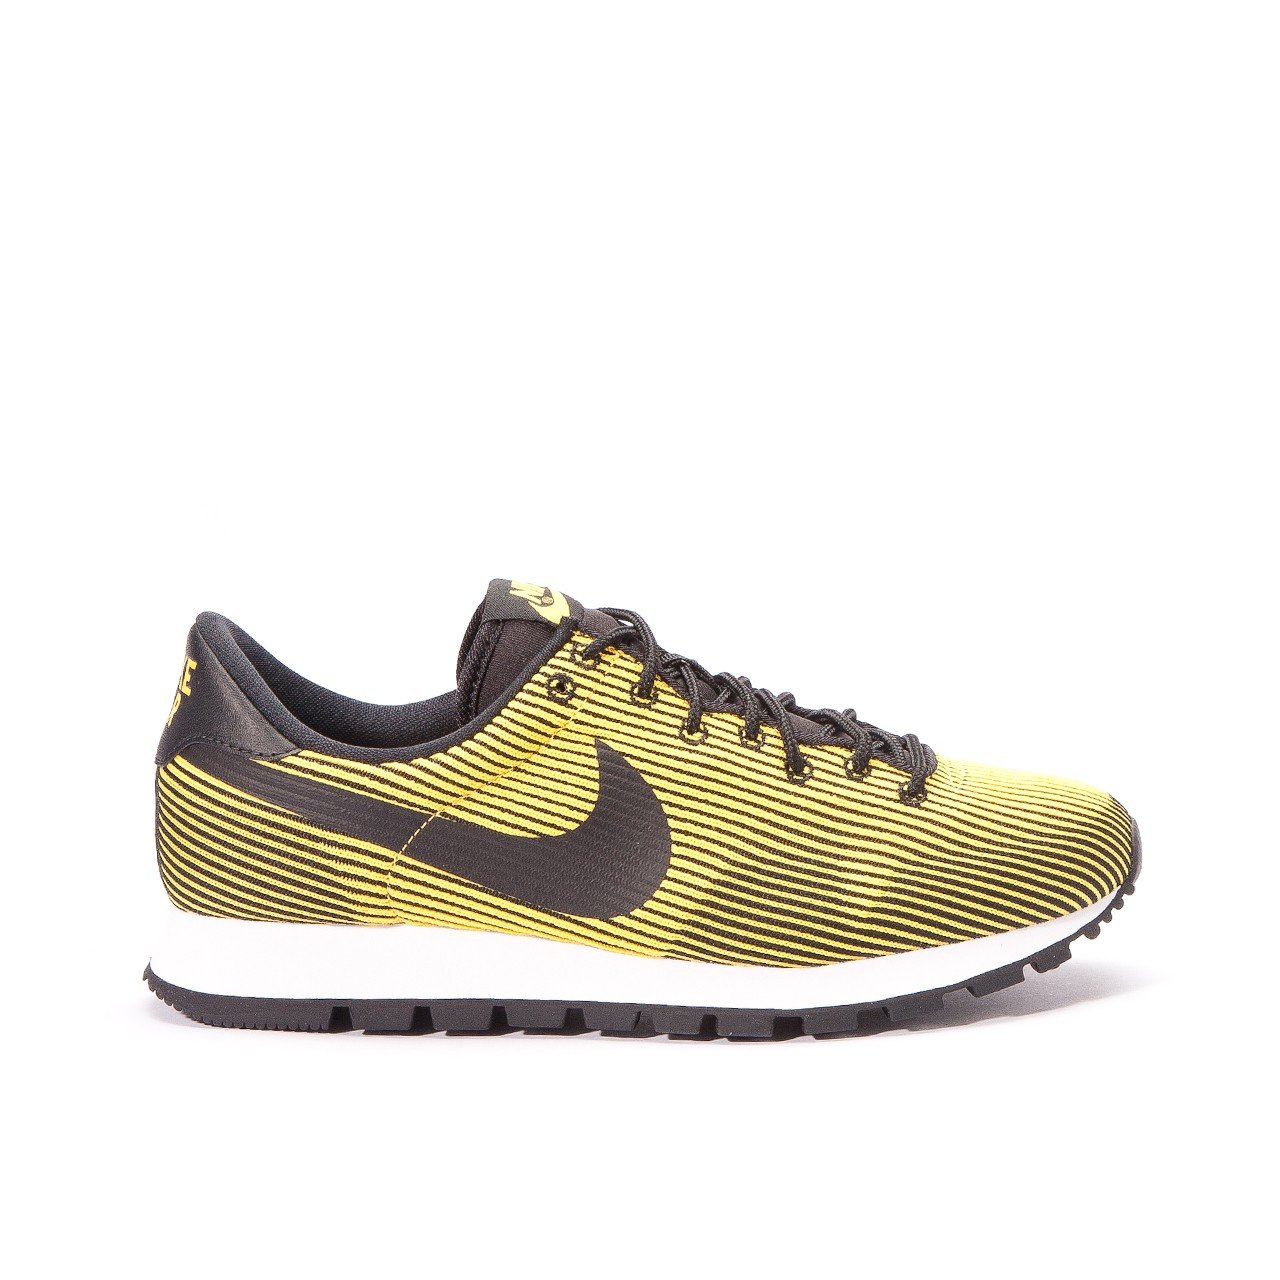 10e67b87067 Amazon.com  Nike Air Pegasus 83 Knit Jacquard (828406-004)  Shoes